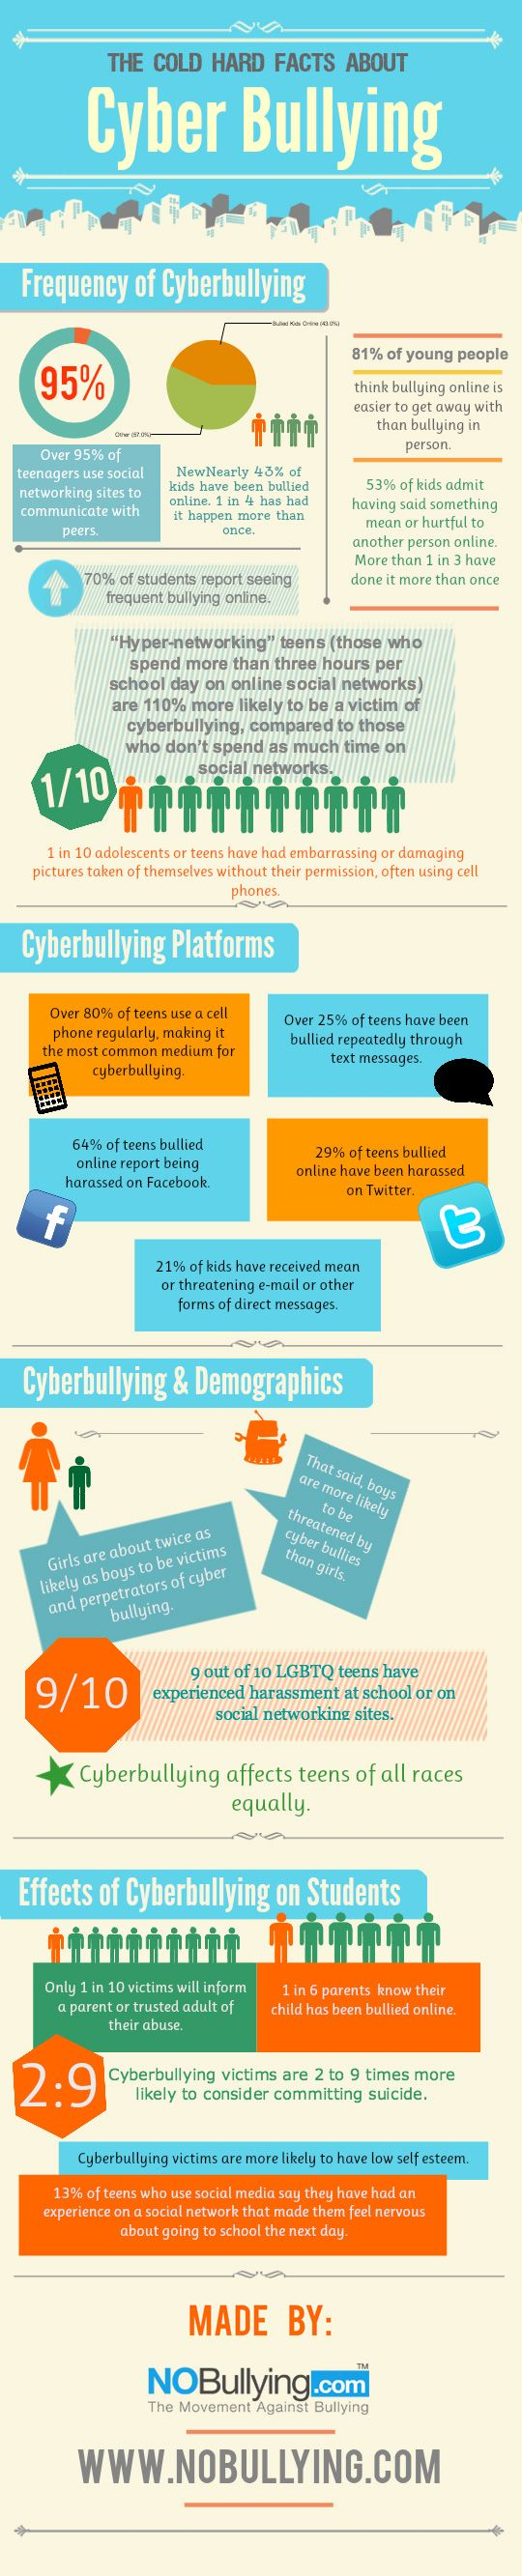 www.nobullying.com id dedicated to helping and advising teens, parents and teachers in their fight against bullying and cyber bullying.: